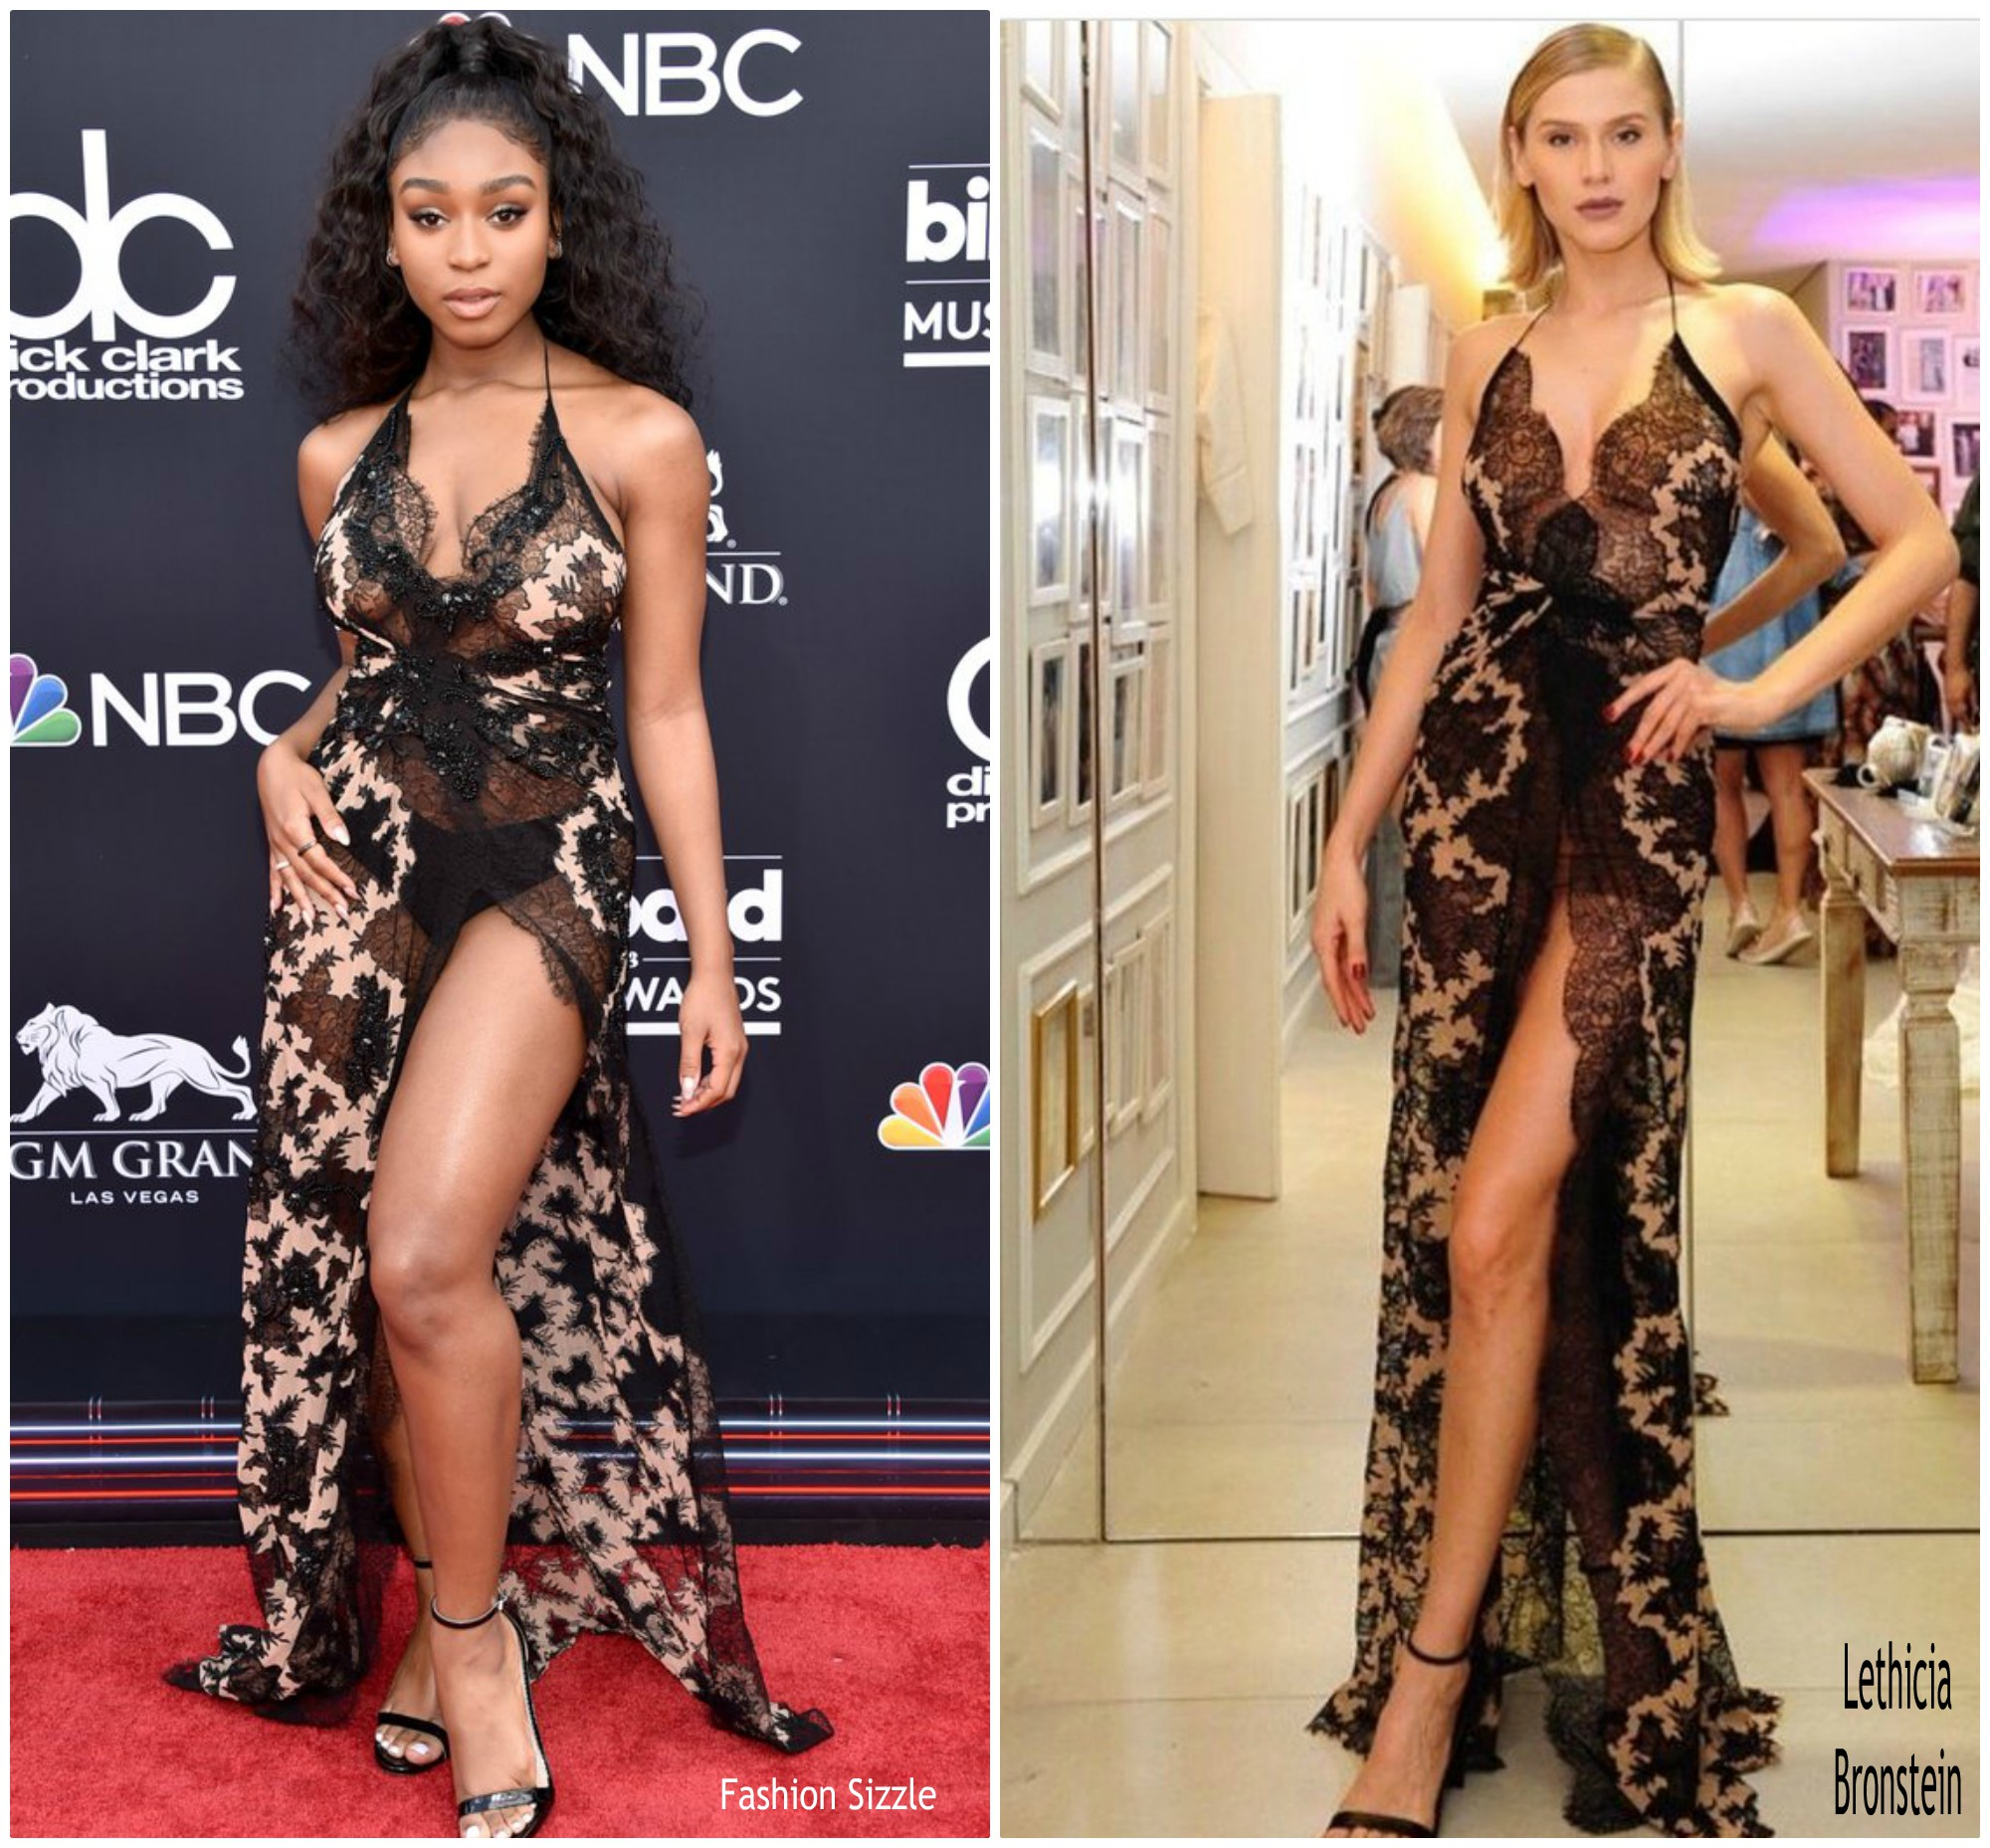 normani-in-lethicia-bronstein-2018-billboard-music-awards